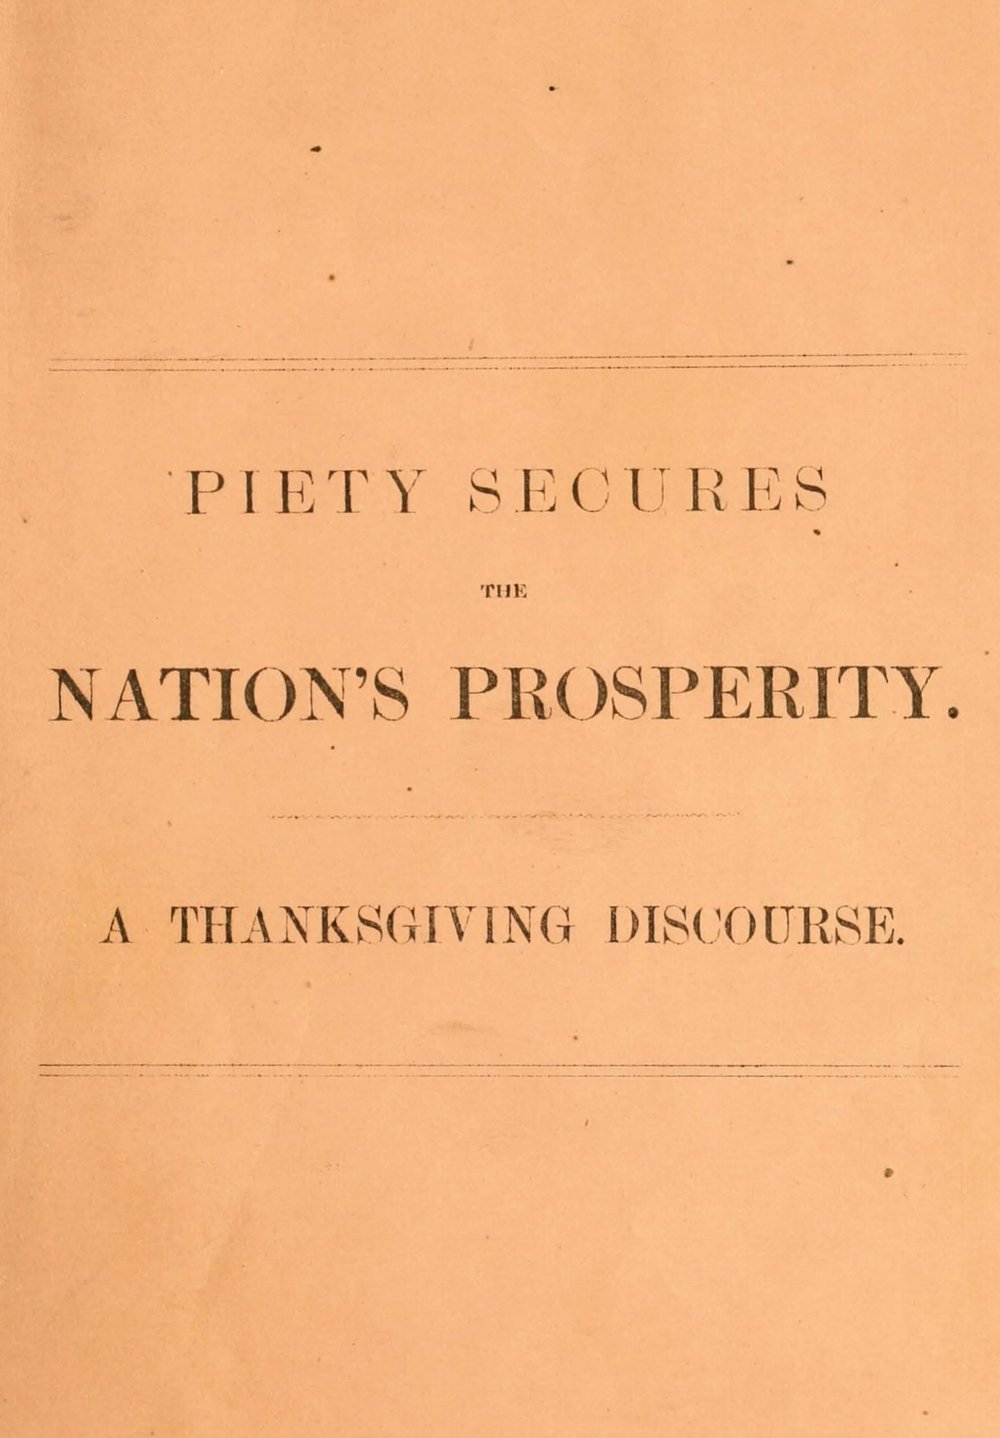 Plumley, Gardiner Spring, Piety Secures the Nation's Prosperity Title Page.jpg